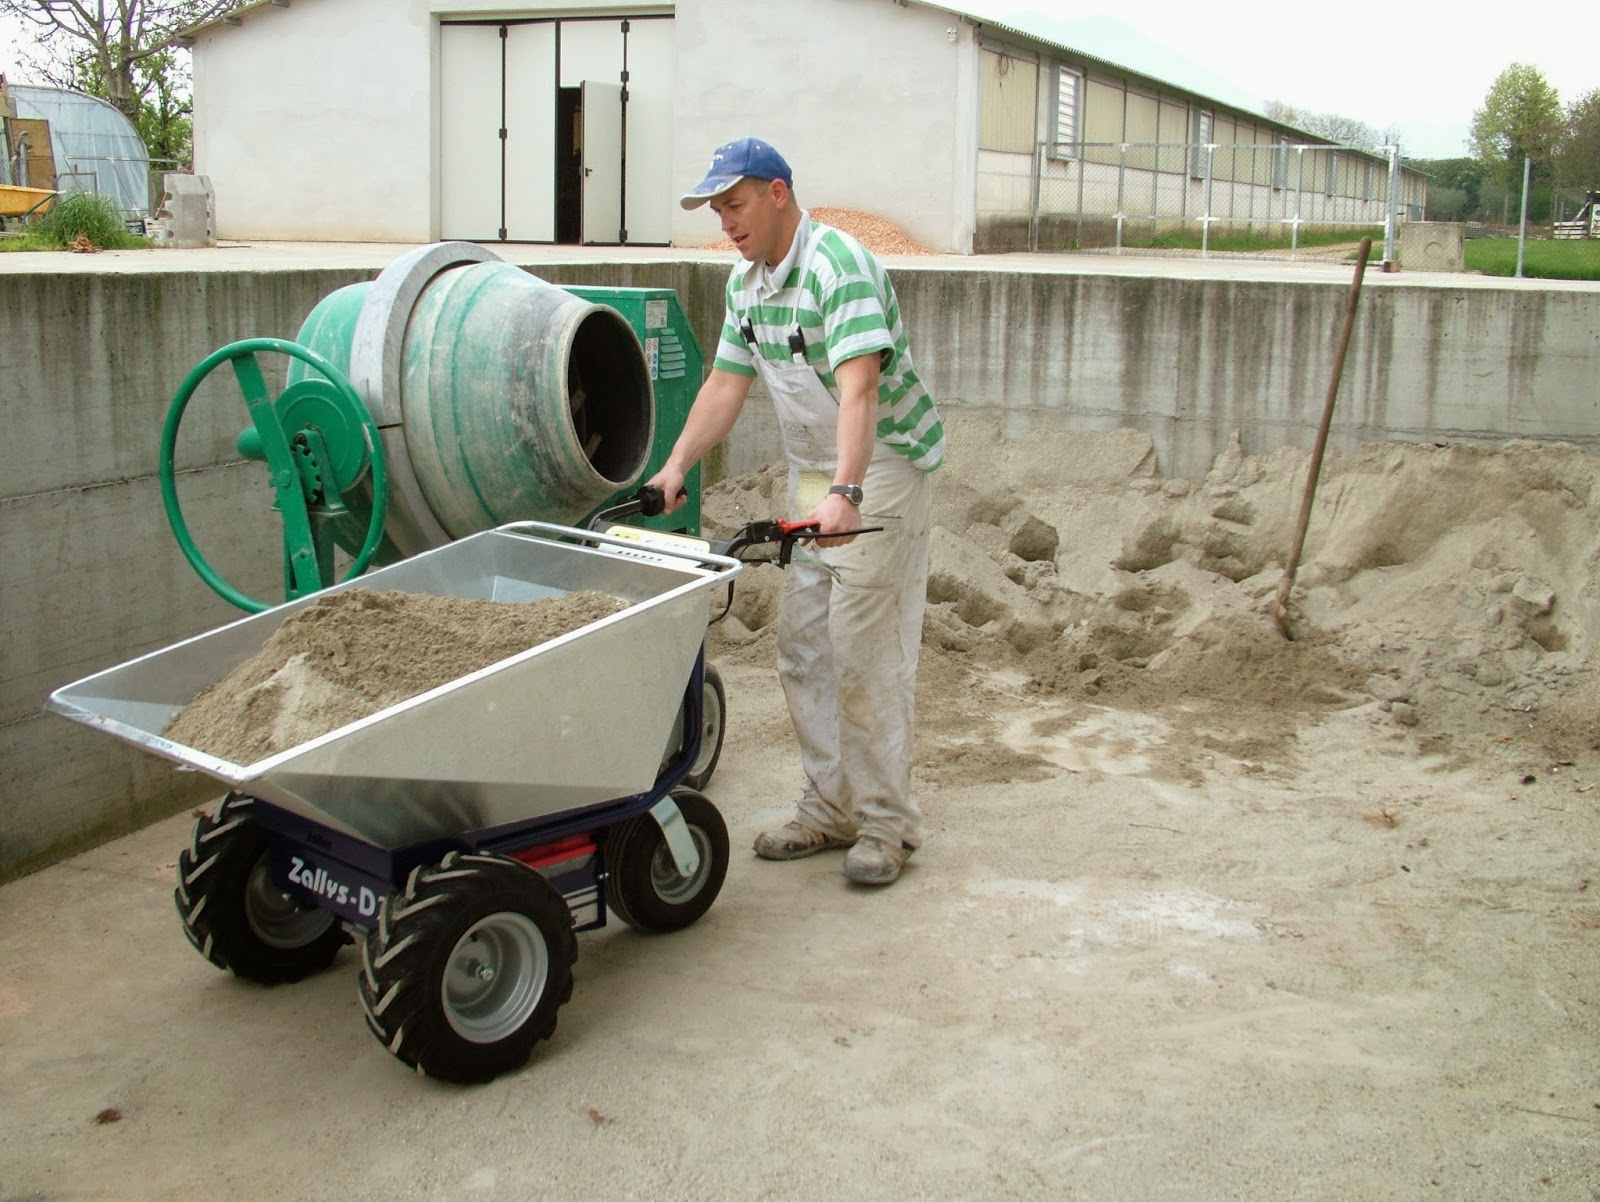 Powered Wheelbarrow Zallys Made In Italy Quality